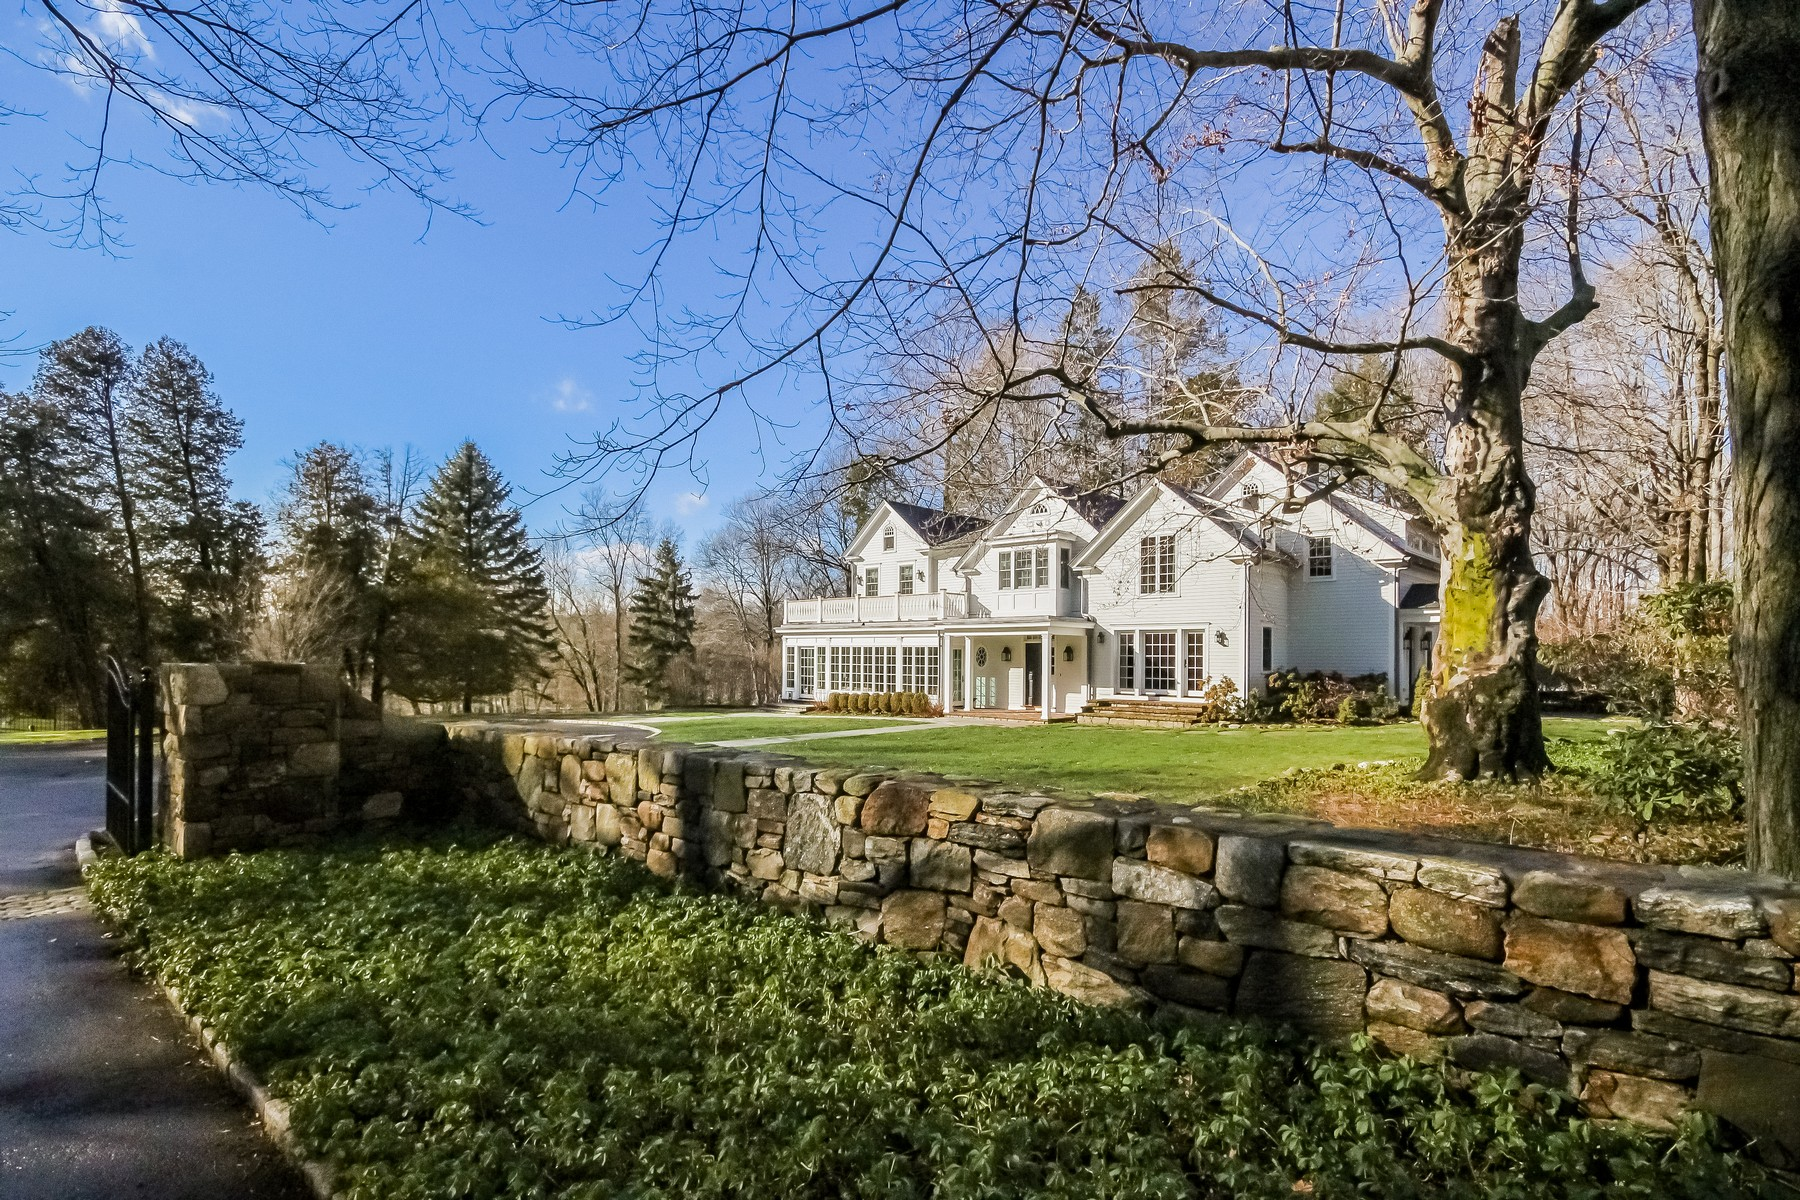 Single Family Home for Sale at GREENFIELD HILL 917 Merwins Lane Fairfield, Connecticut, 06824 United States